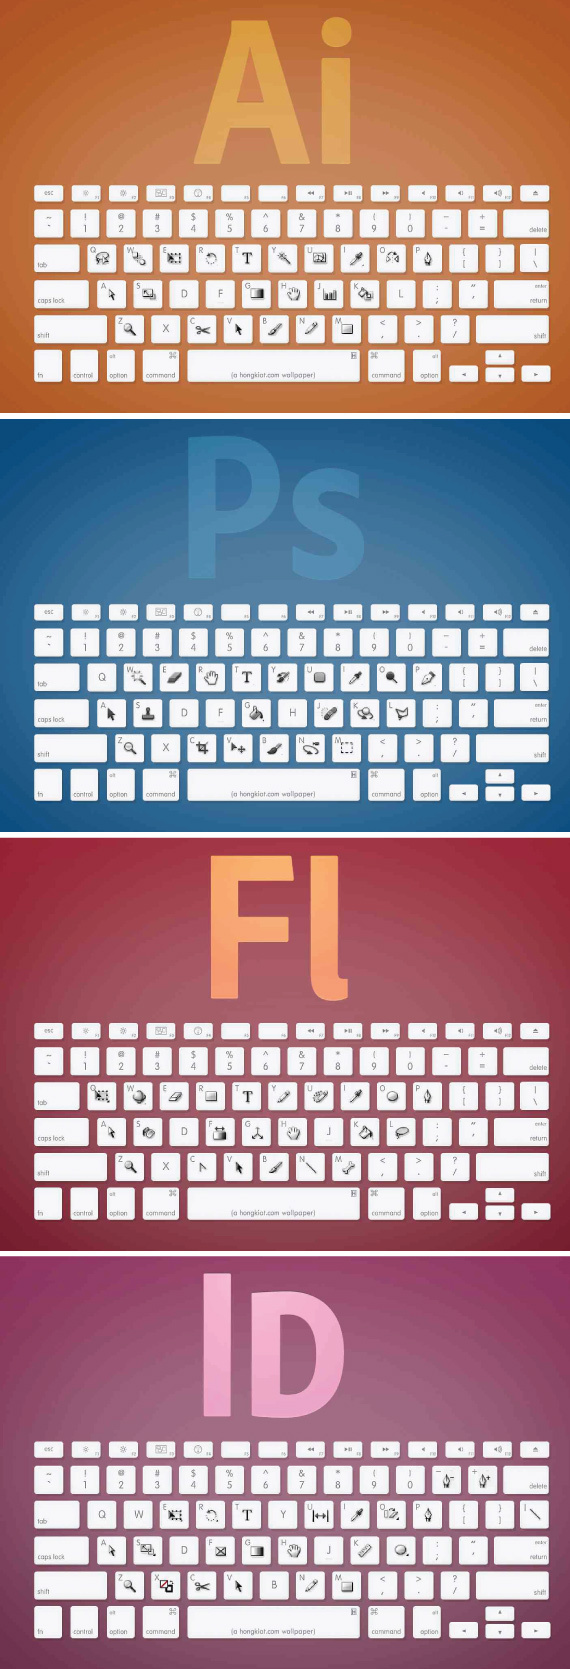 adobe illustrator keyboard shortcuts #adobe